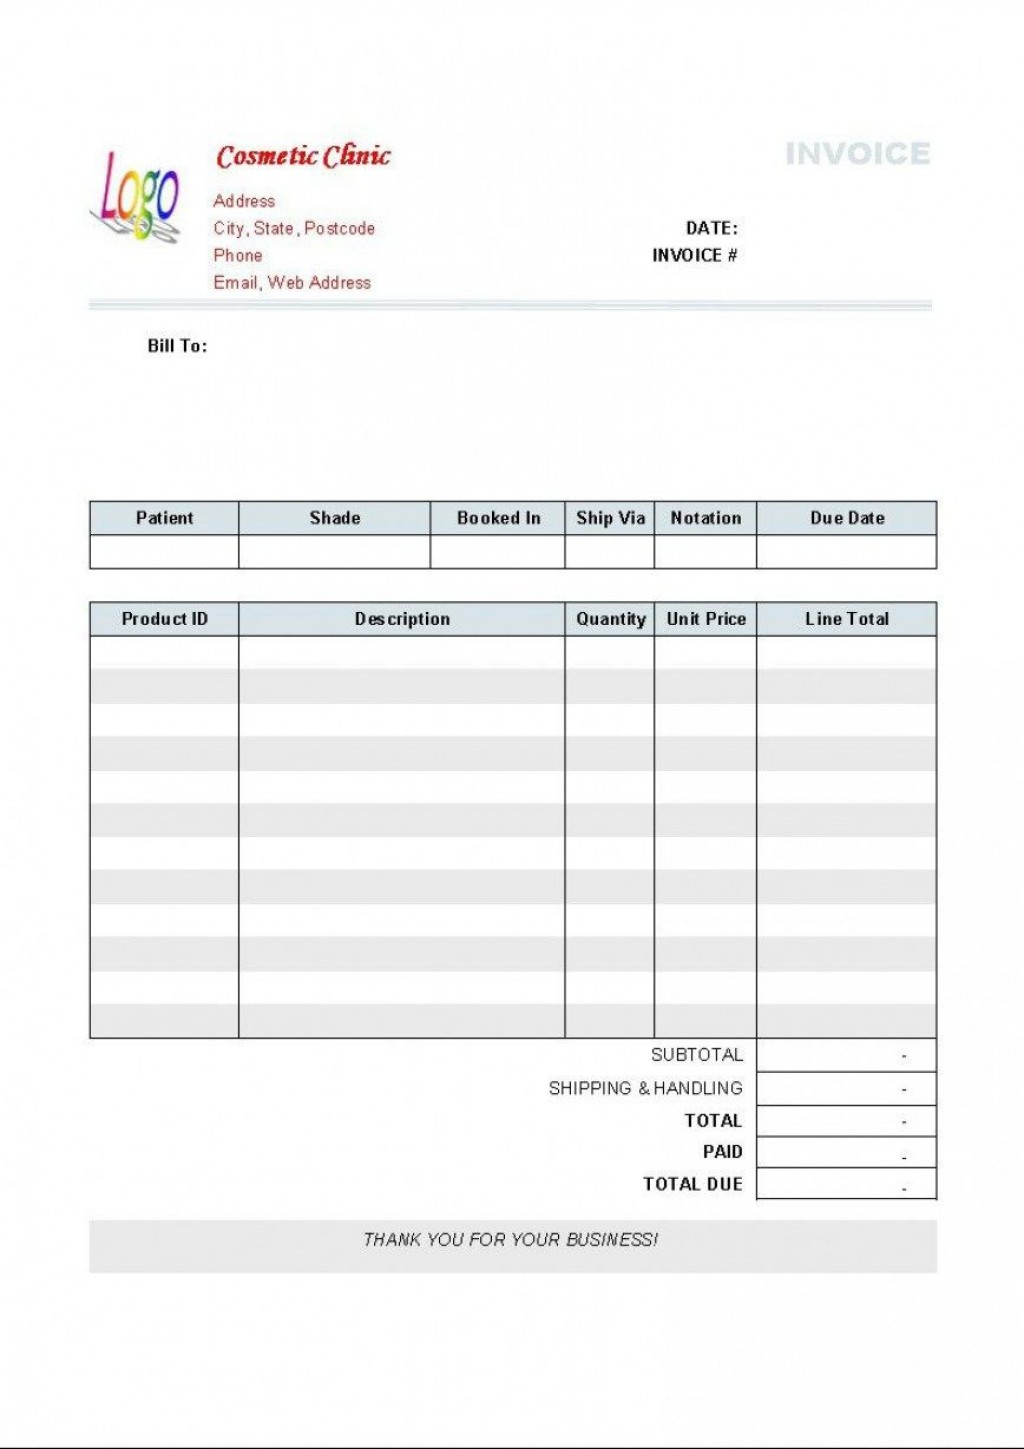 009 Stunning Free Printable Invoice Template Nz High Definition Large